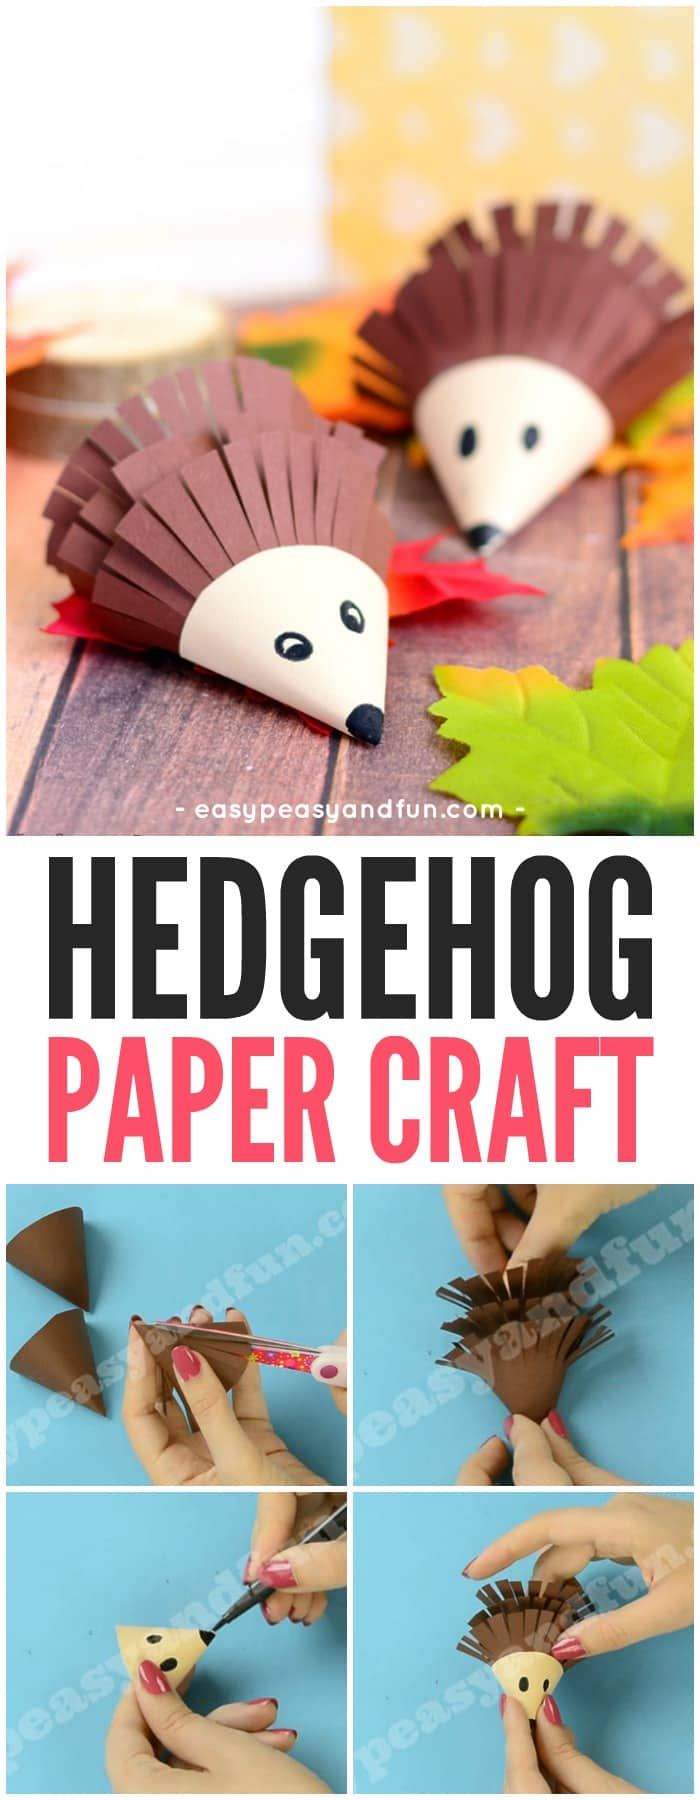 Cute Hedgehog Paper Craft Idea for Kids